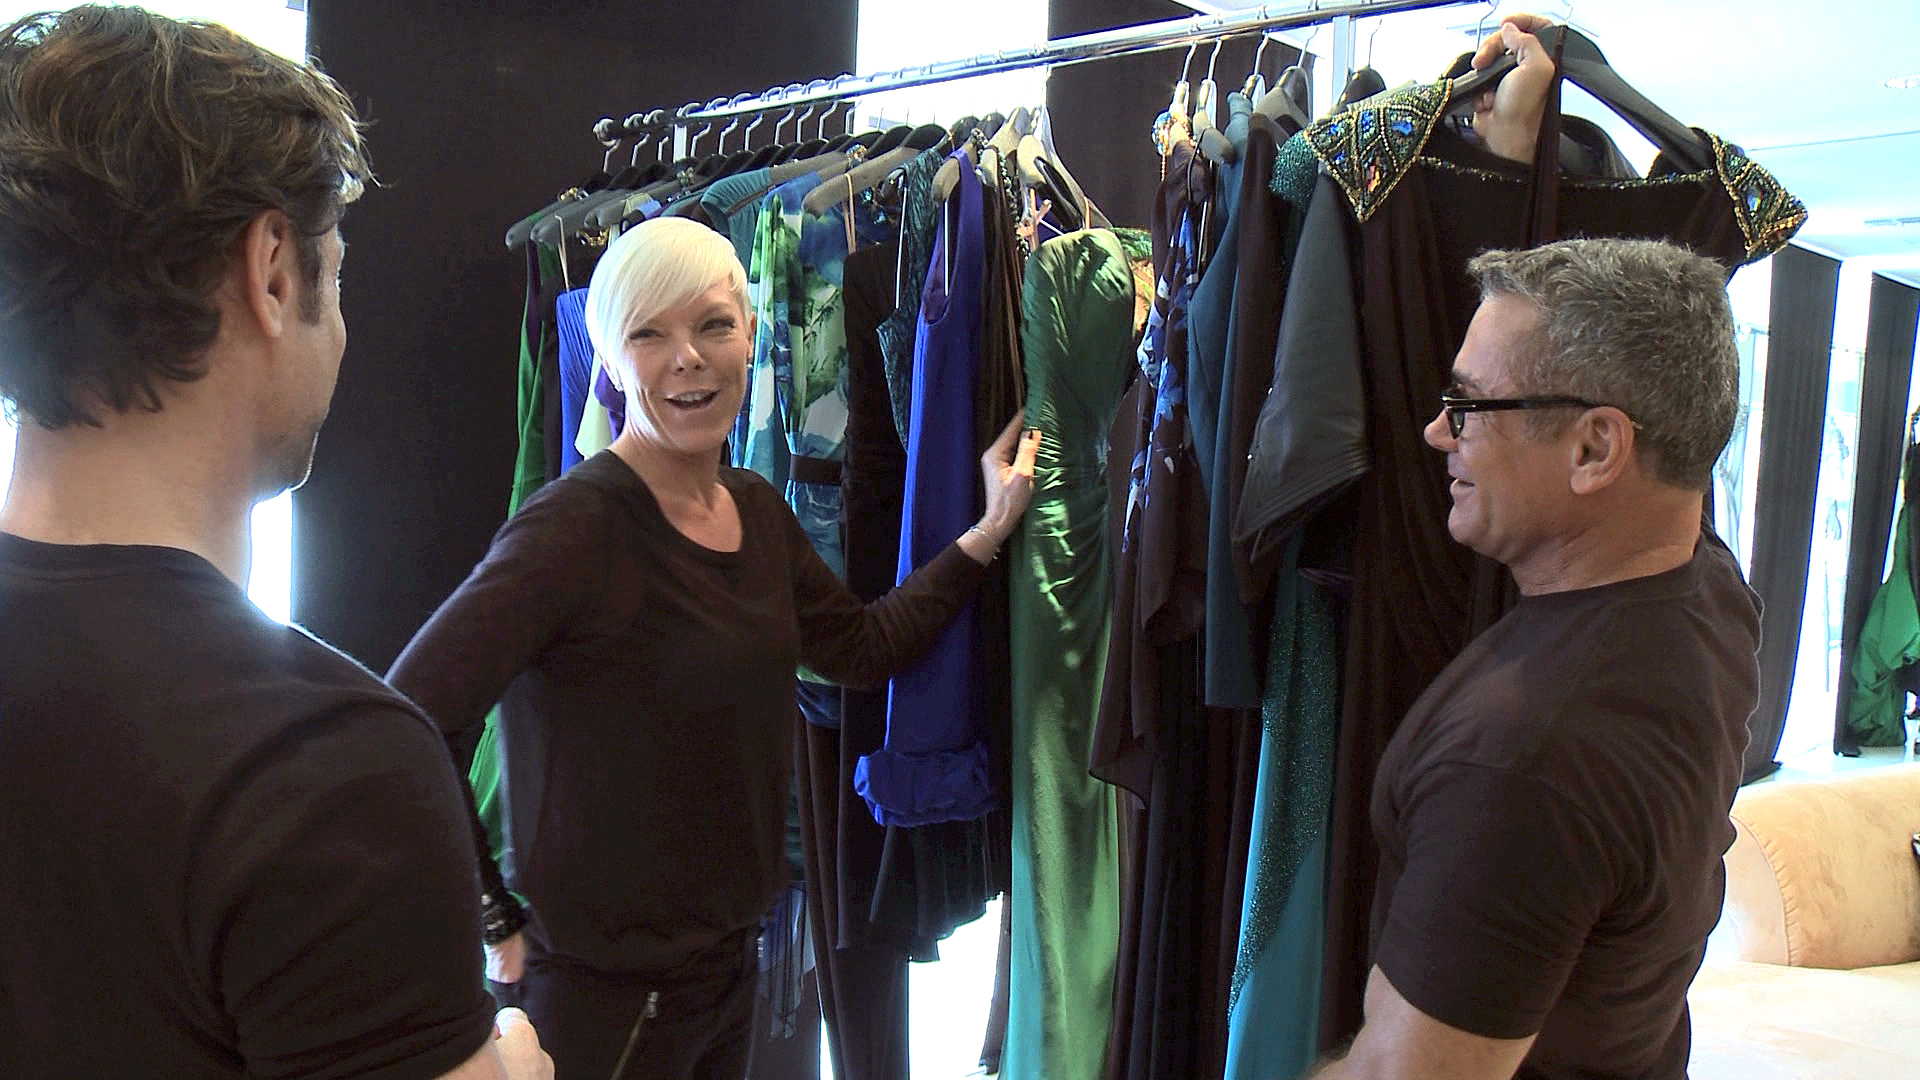 A Day in the Life: The Dress Fitting